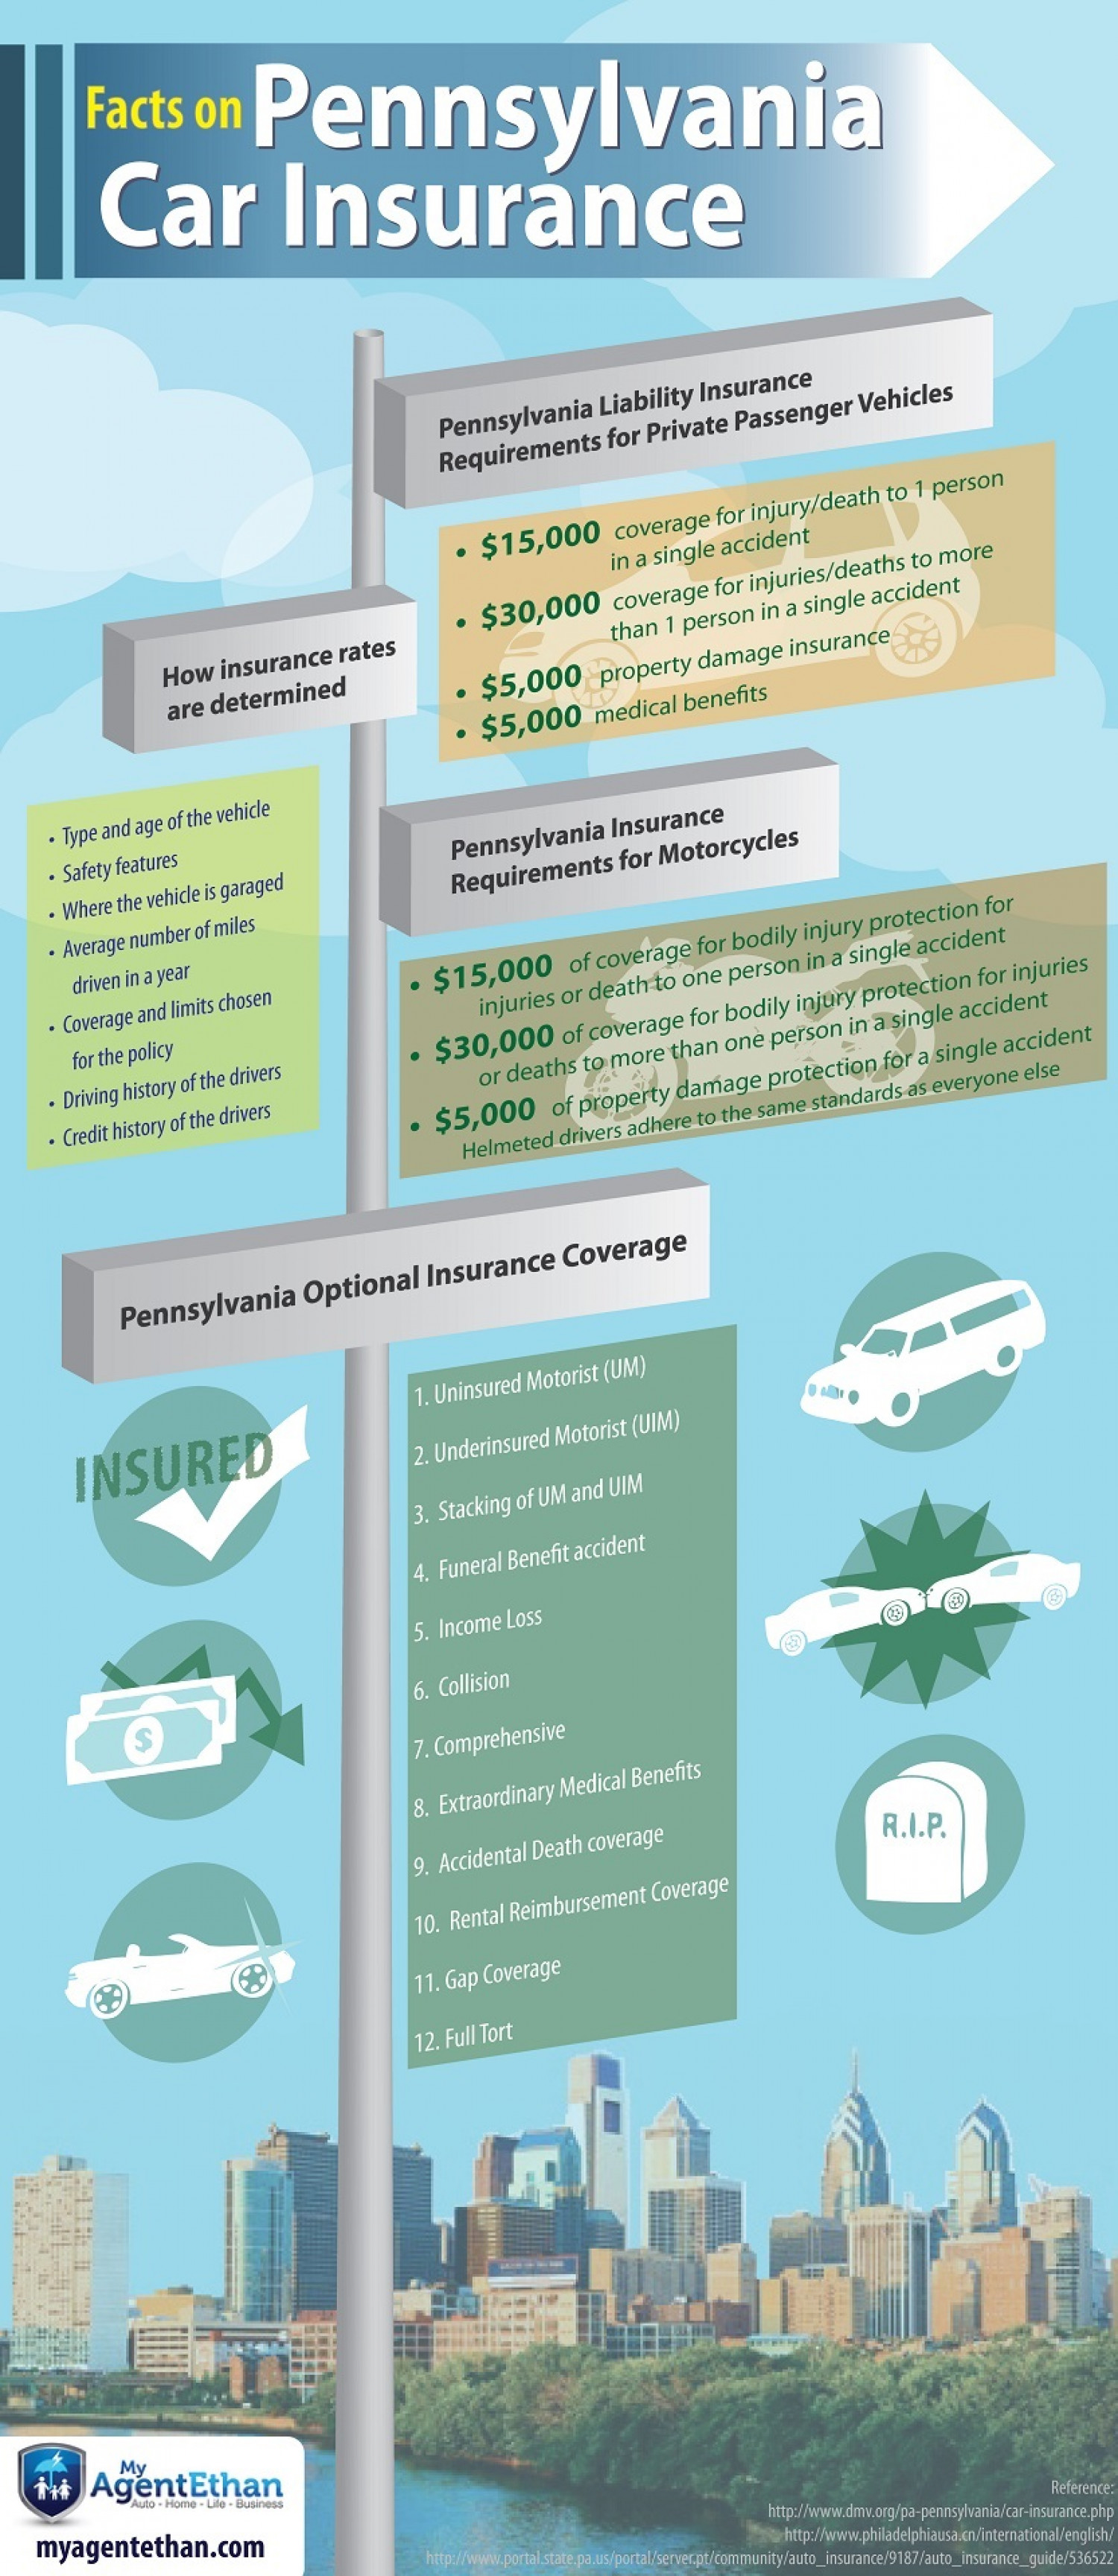 Pennsylvania Auto Insurance Facts Infographic